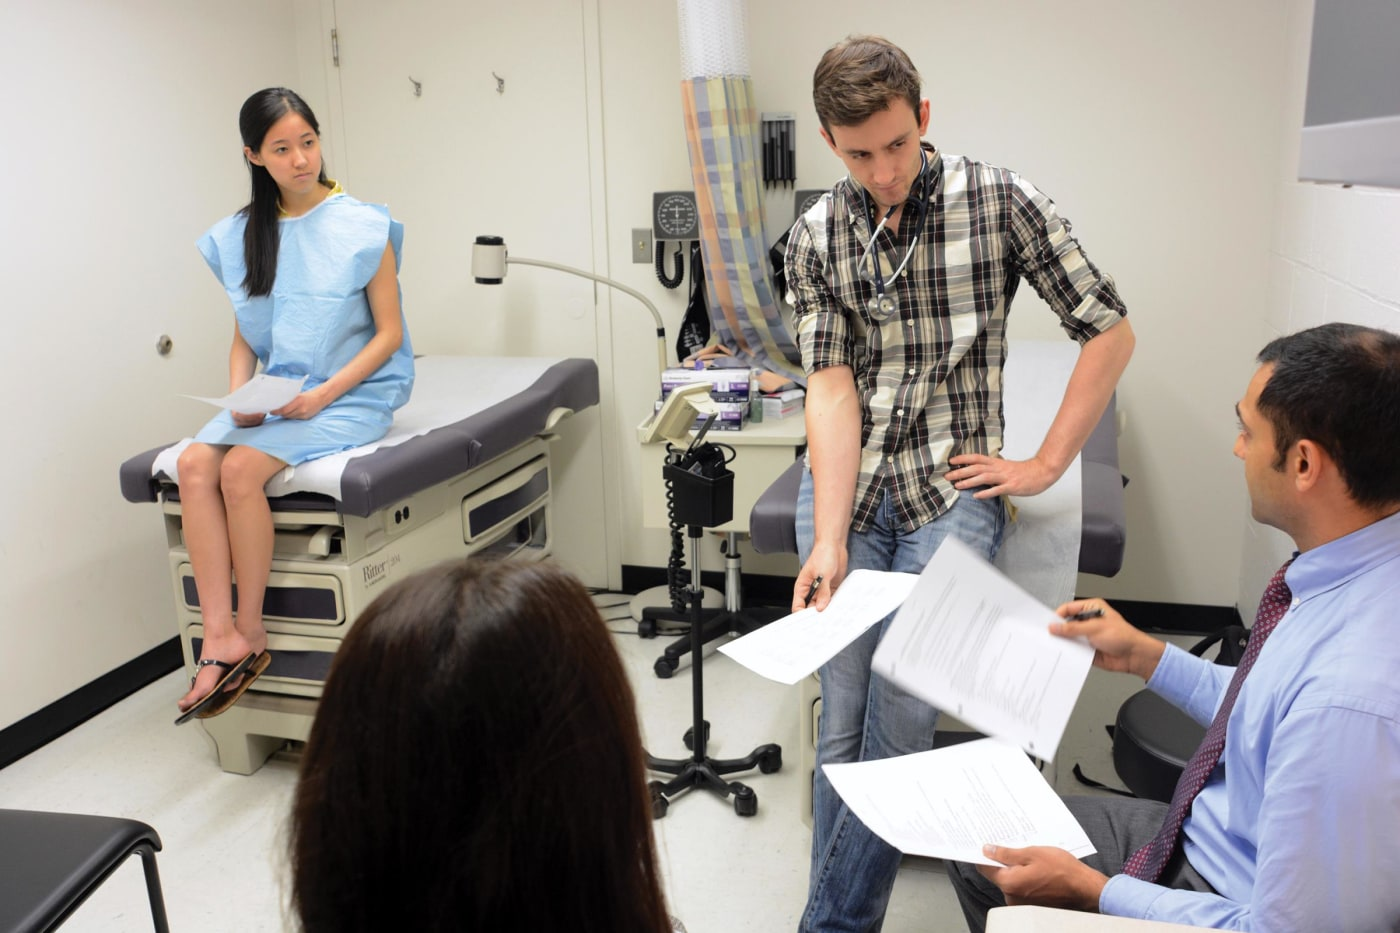 In the clinical exam room, Emily Yin role-played a patient while Radovan Vasic conducted an exam and Amit Mittal observed. Marina di Bartolo, a medical student in her final year, supervised the session.